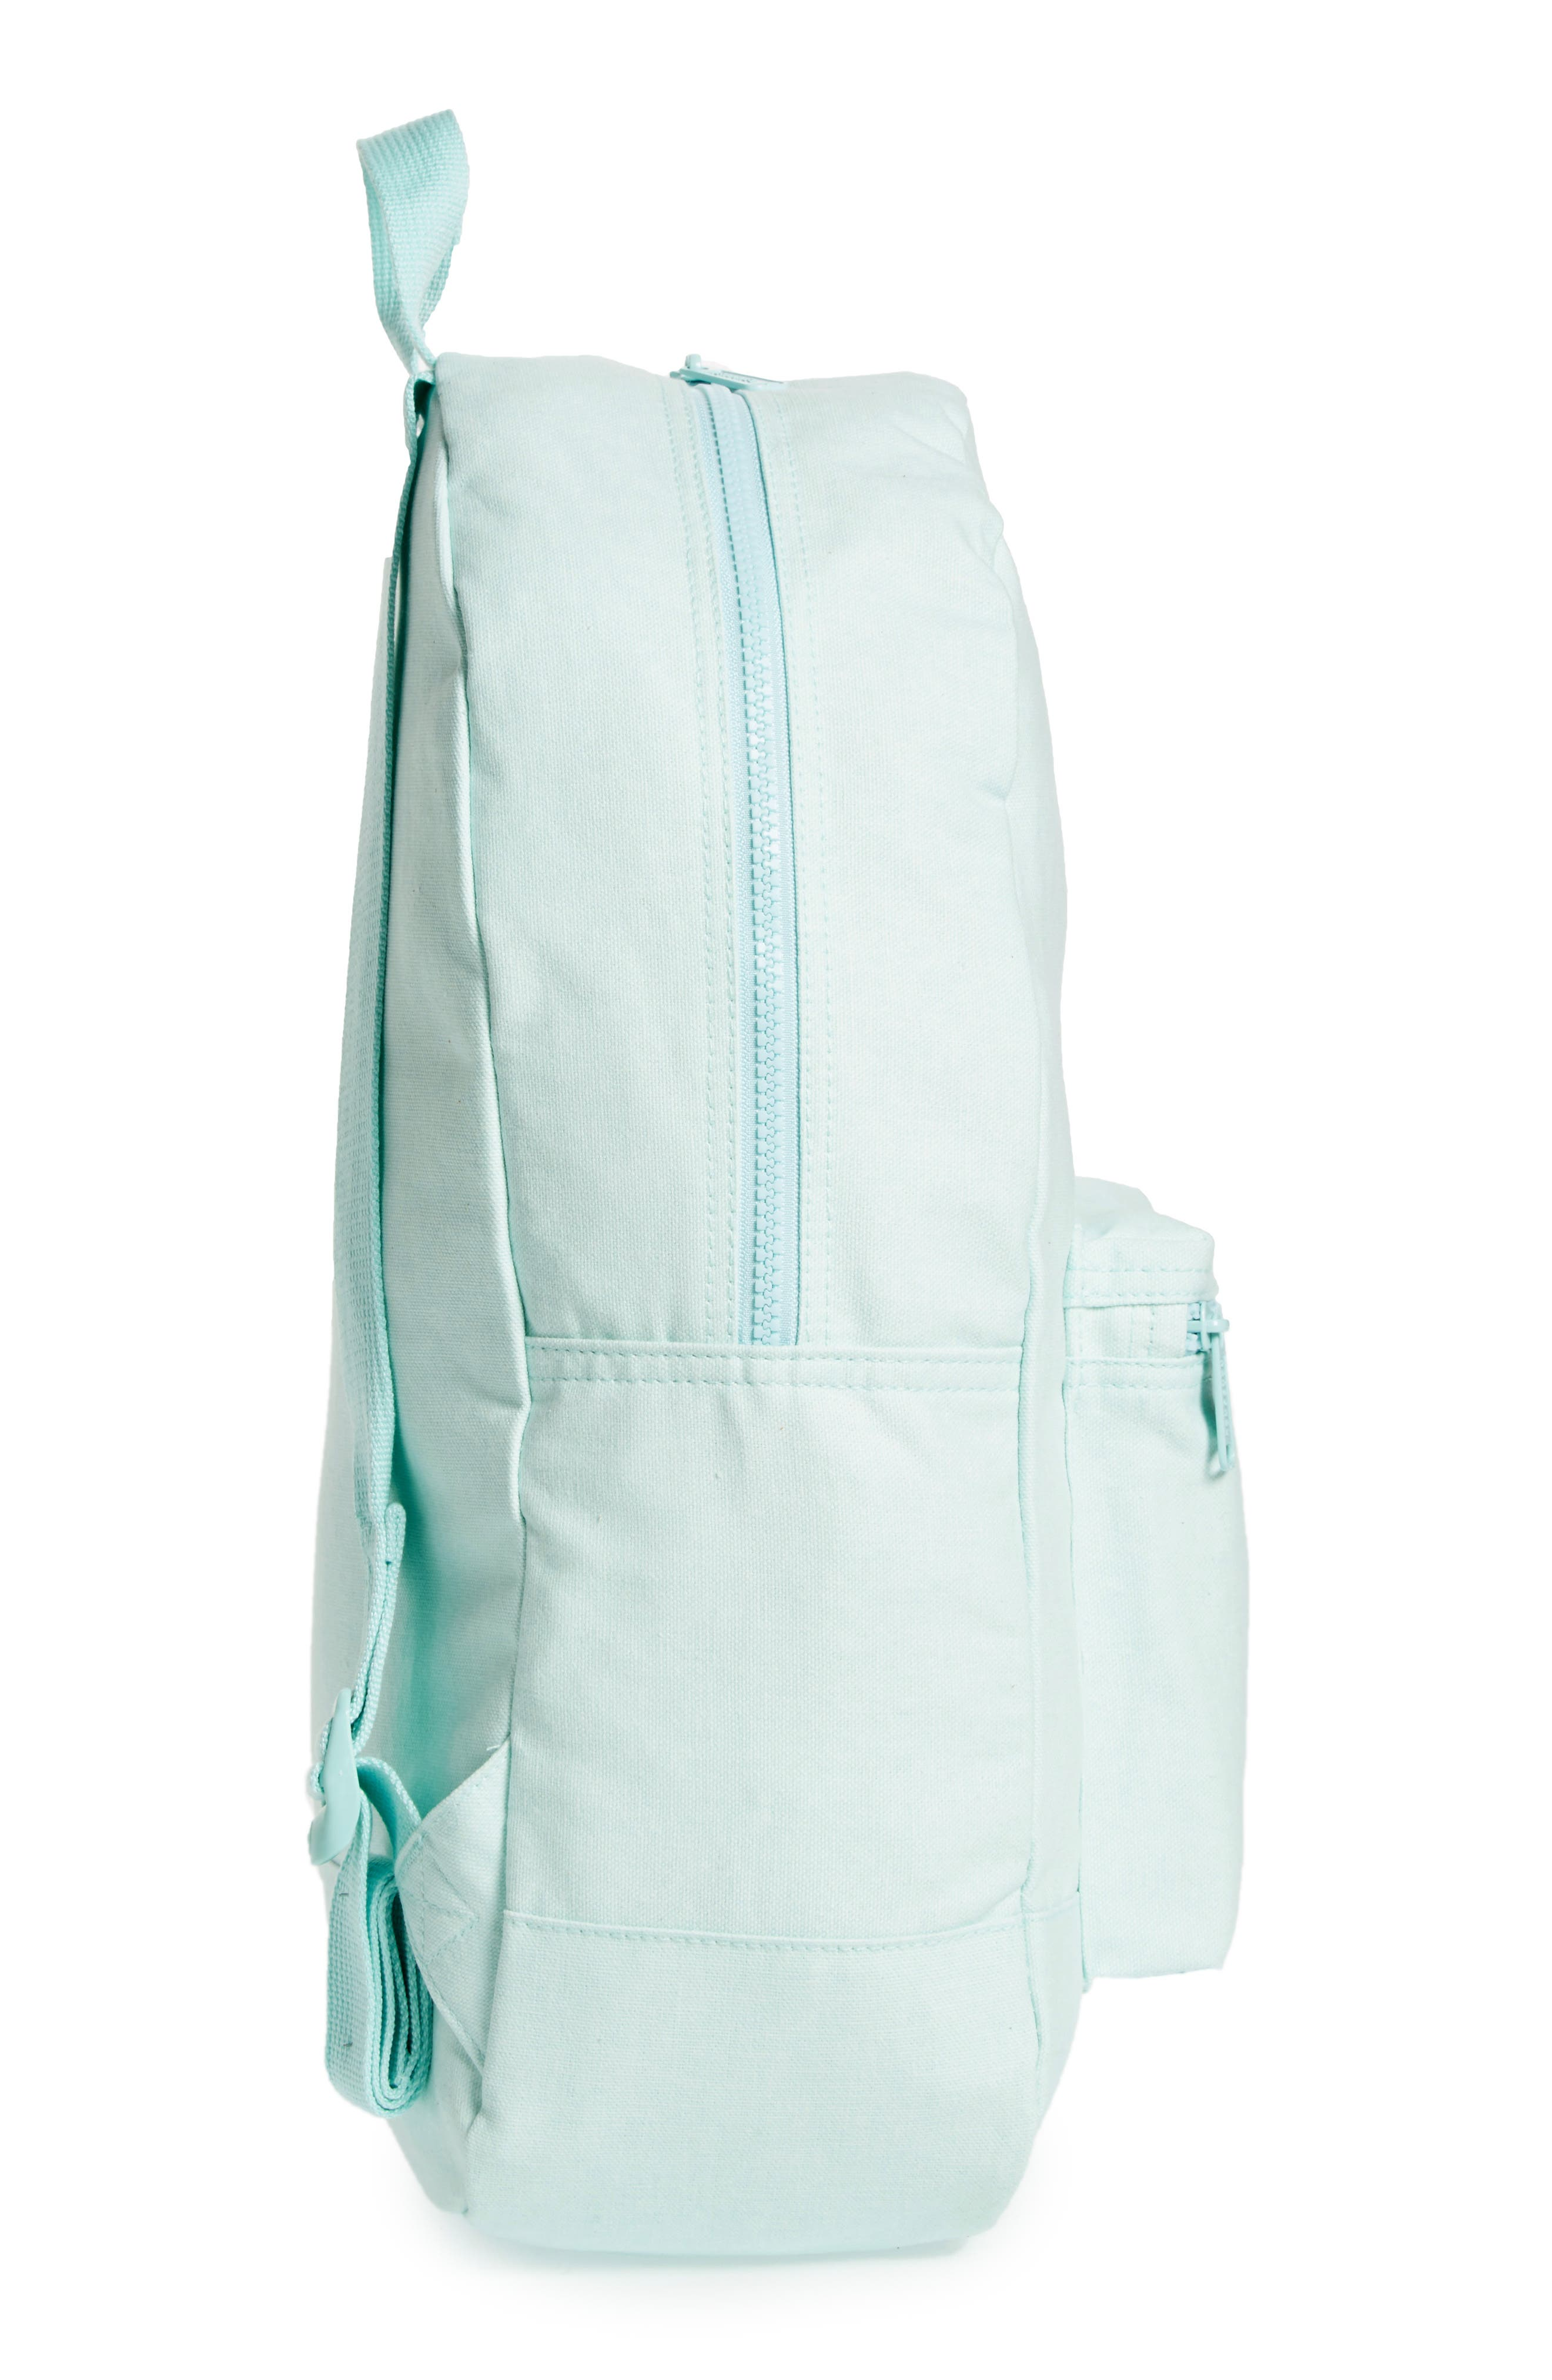 Cotton Casuals Daypack Backpack,                             Alternate thumbnail 43, color,